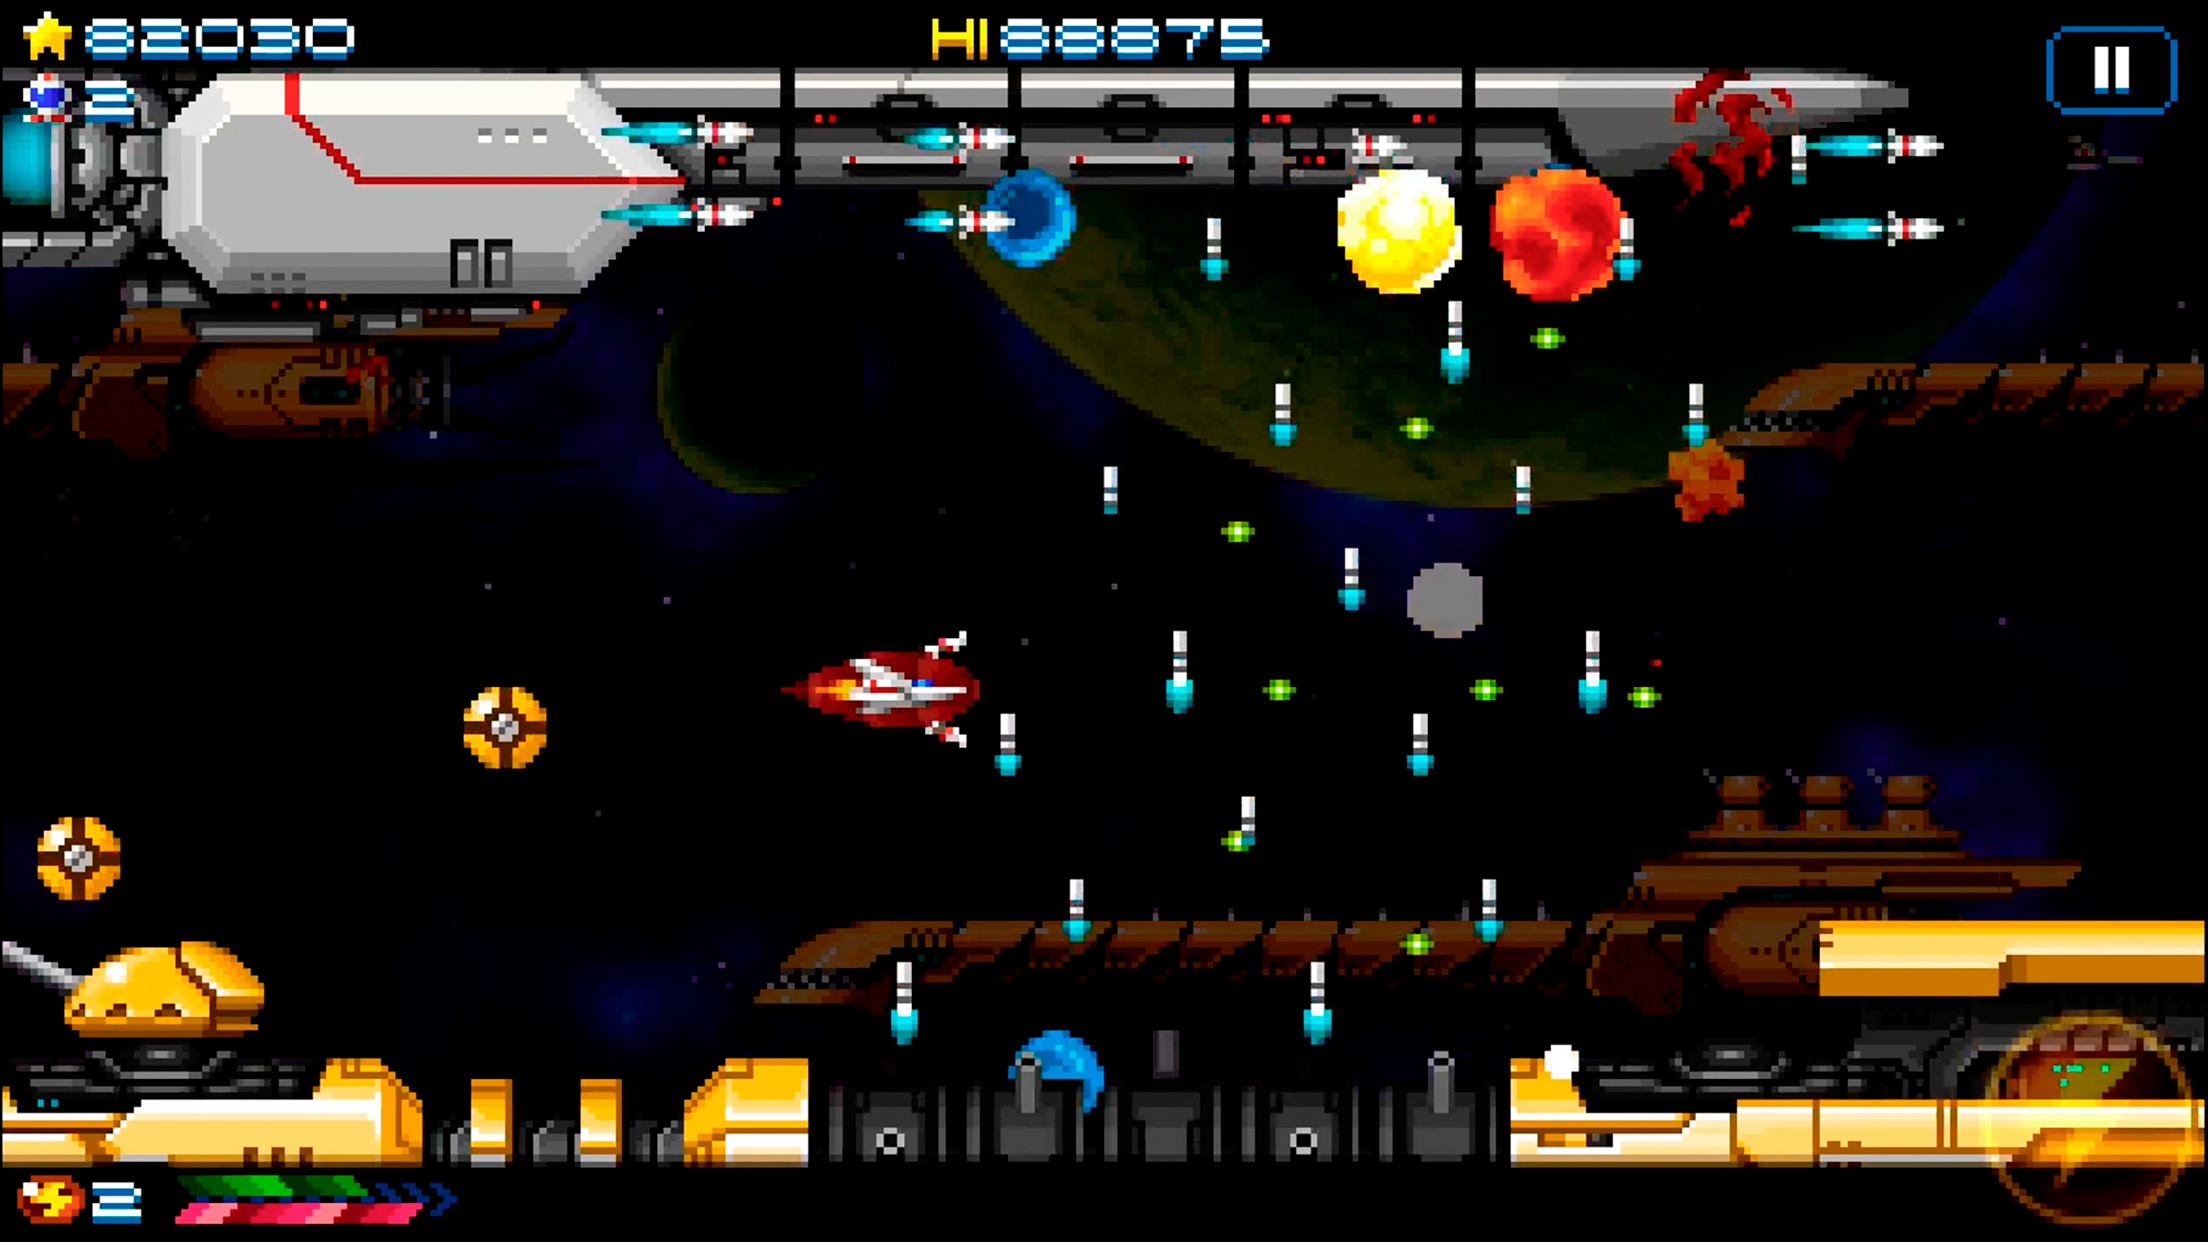 super hydorah screenshot , shmup, shoot'em up, arcade, indie, ps4, playstation 4